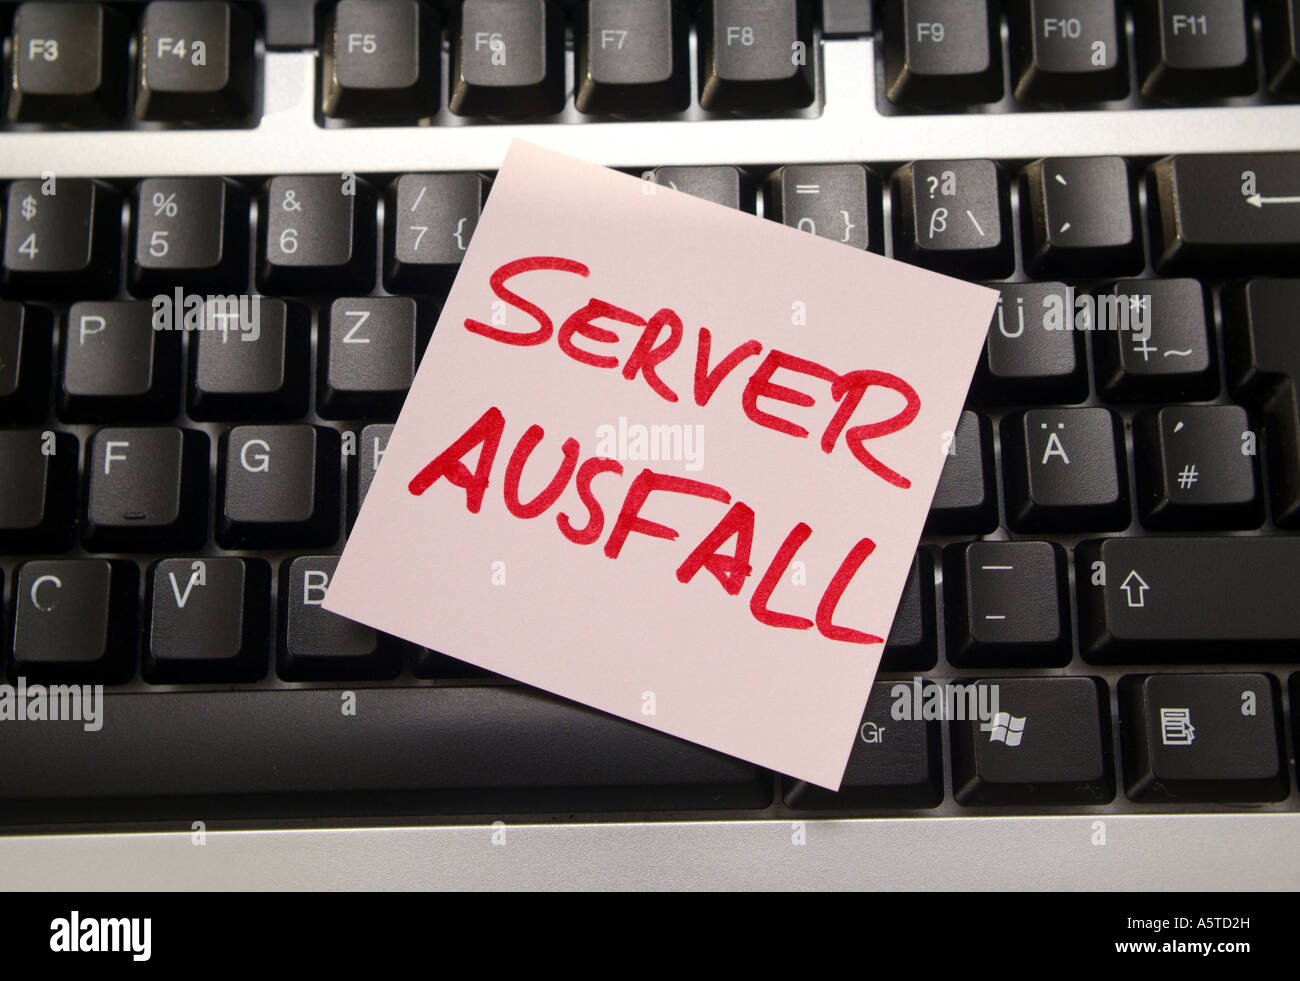 Server Ausfall Post It auf Computertastatur Server Breakdown notice on computer keyboard Stock Photo